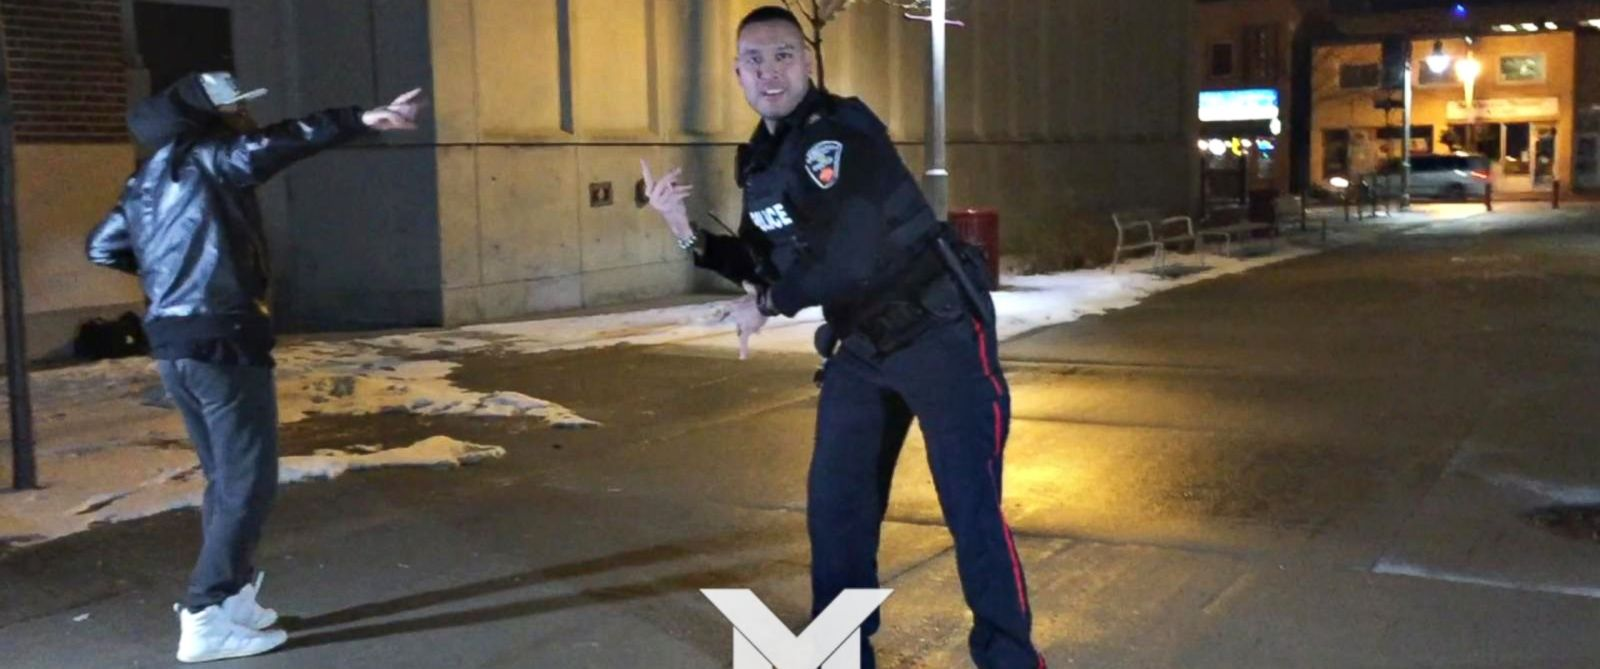 PHOTO: Police officer Jarrod Singh thought he was being called to break up a fight instead found himself in the middle of a music video shoot and showed off his own dance skills.